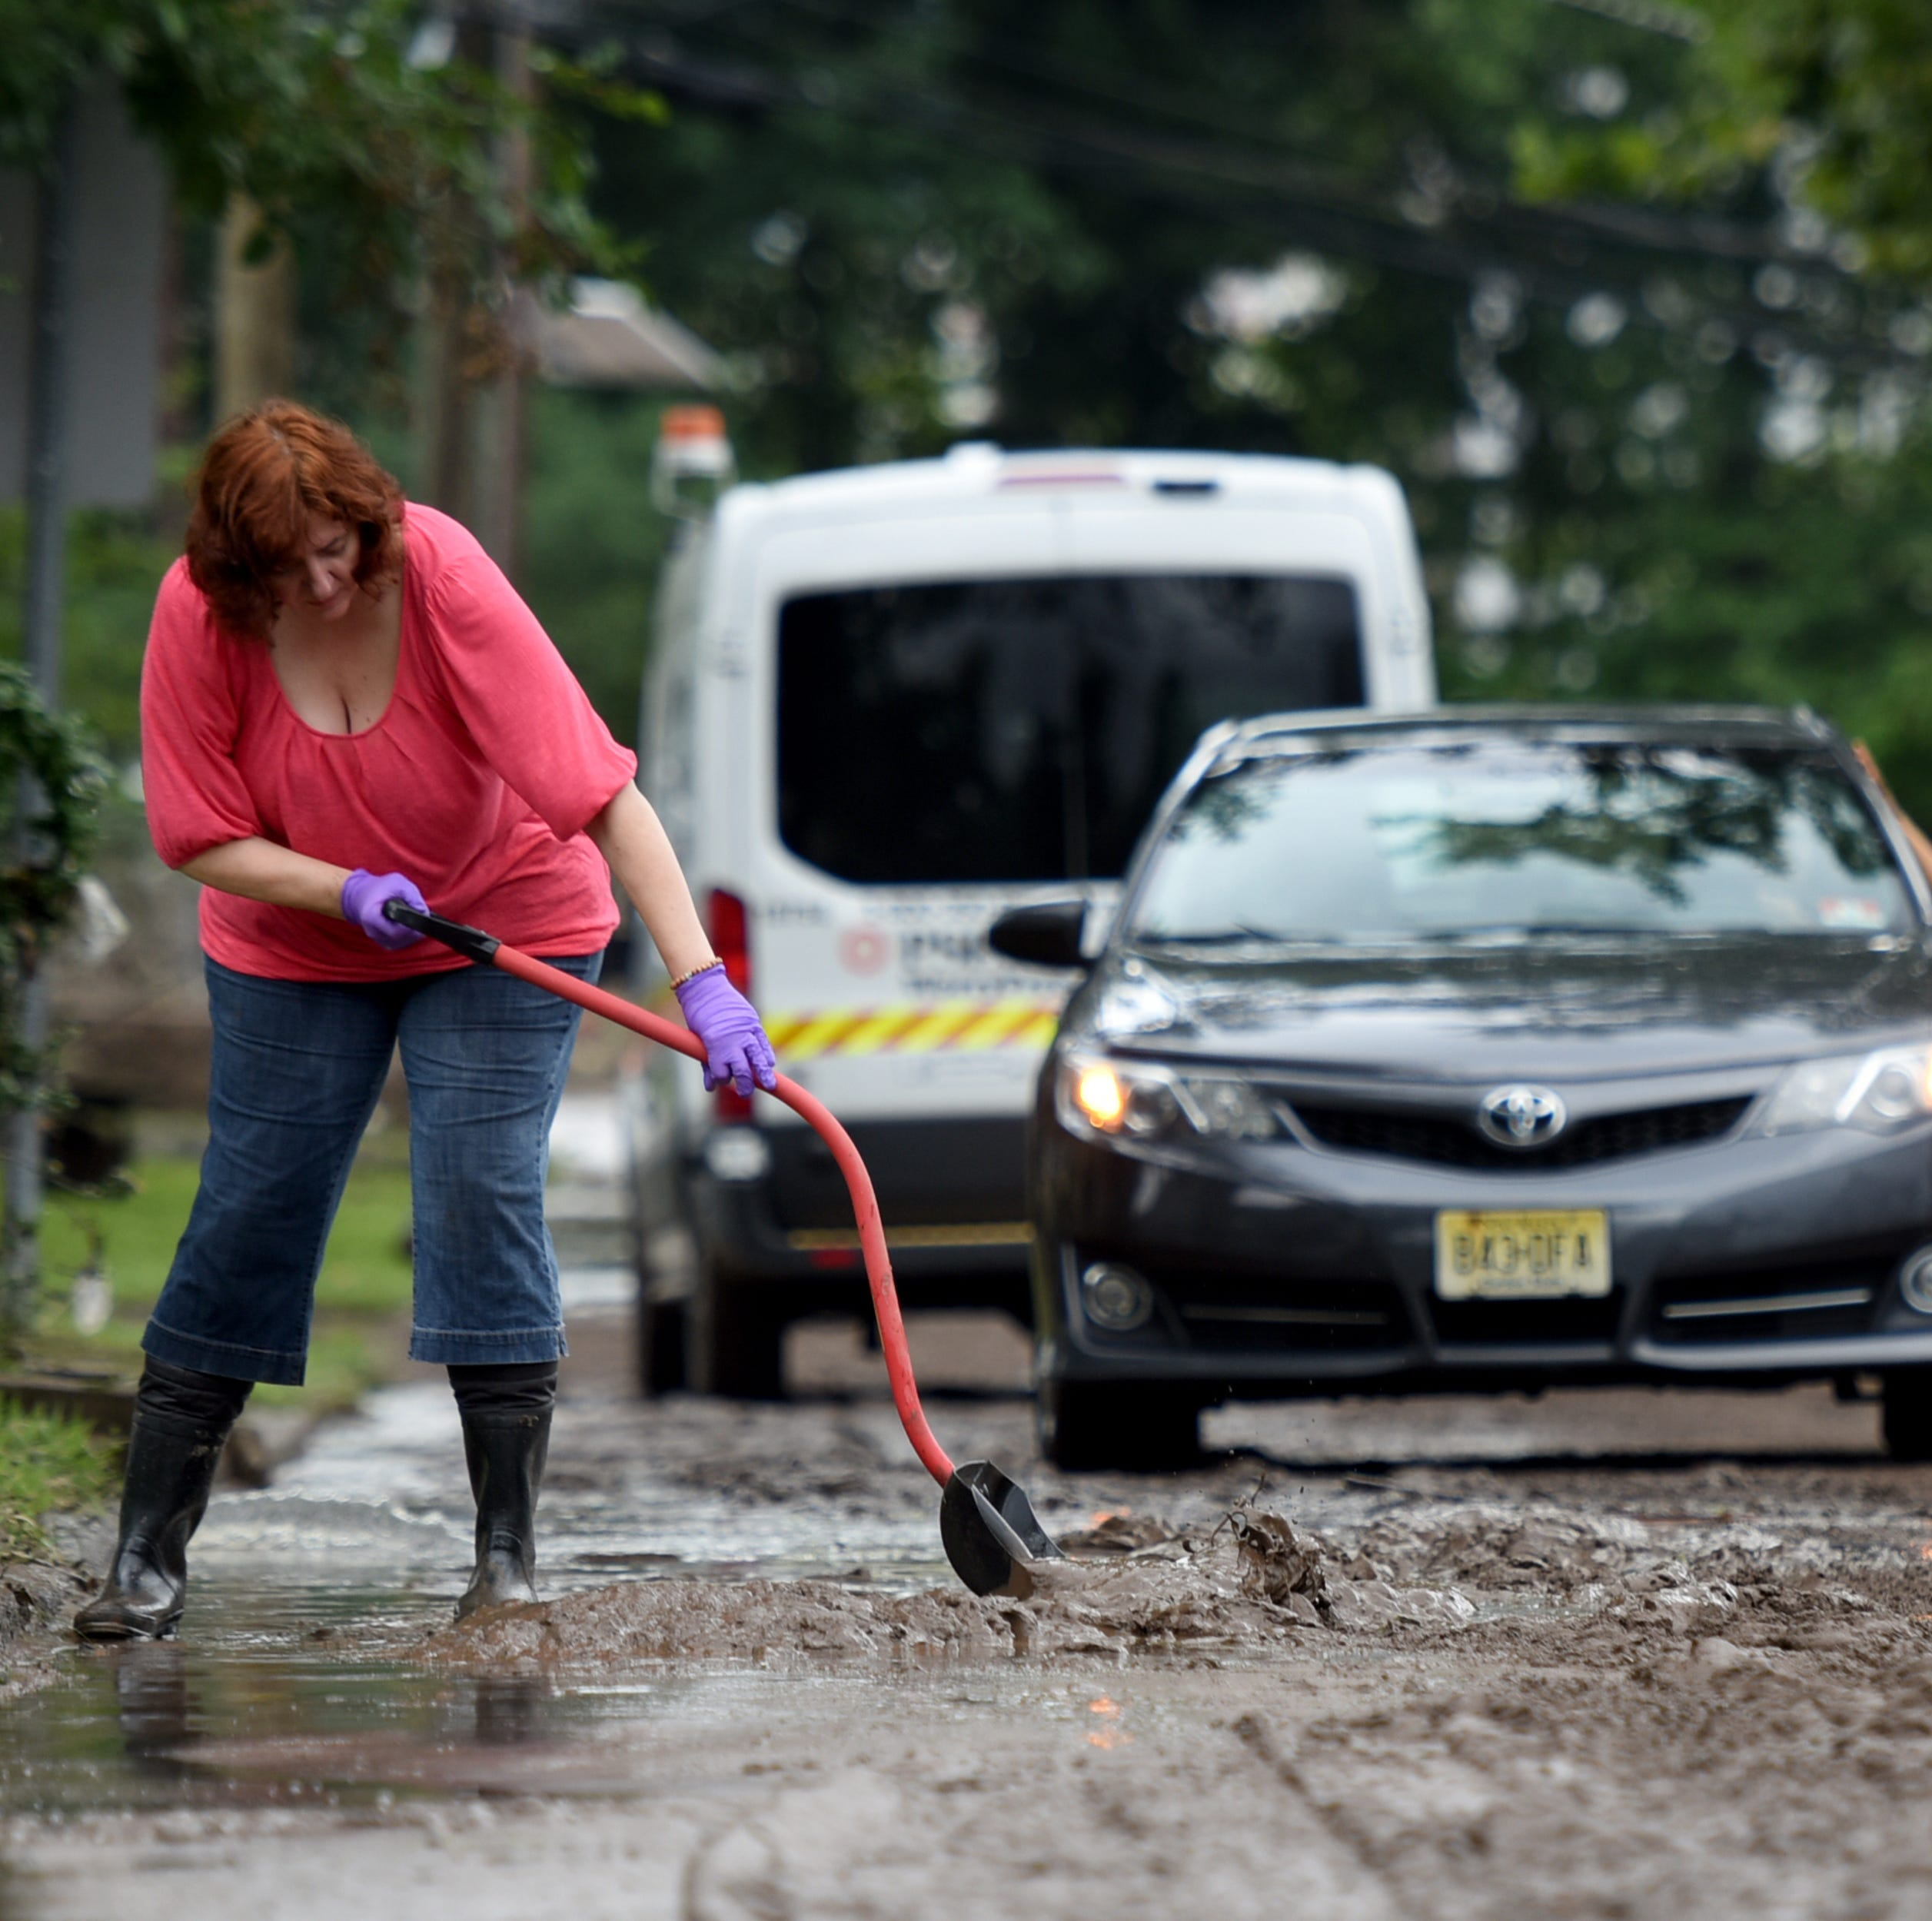 North Jersey can expect more rain as flash flood warning issued for entire state